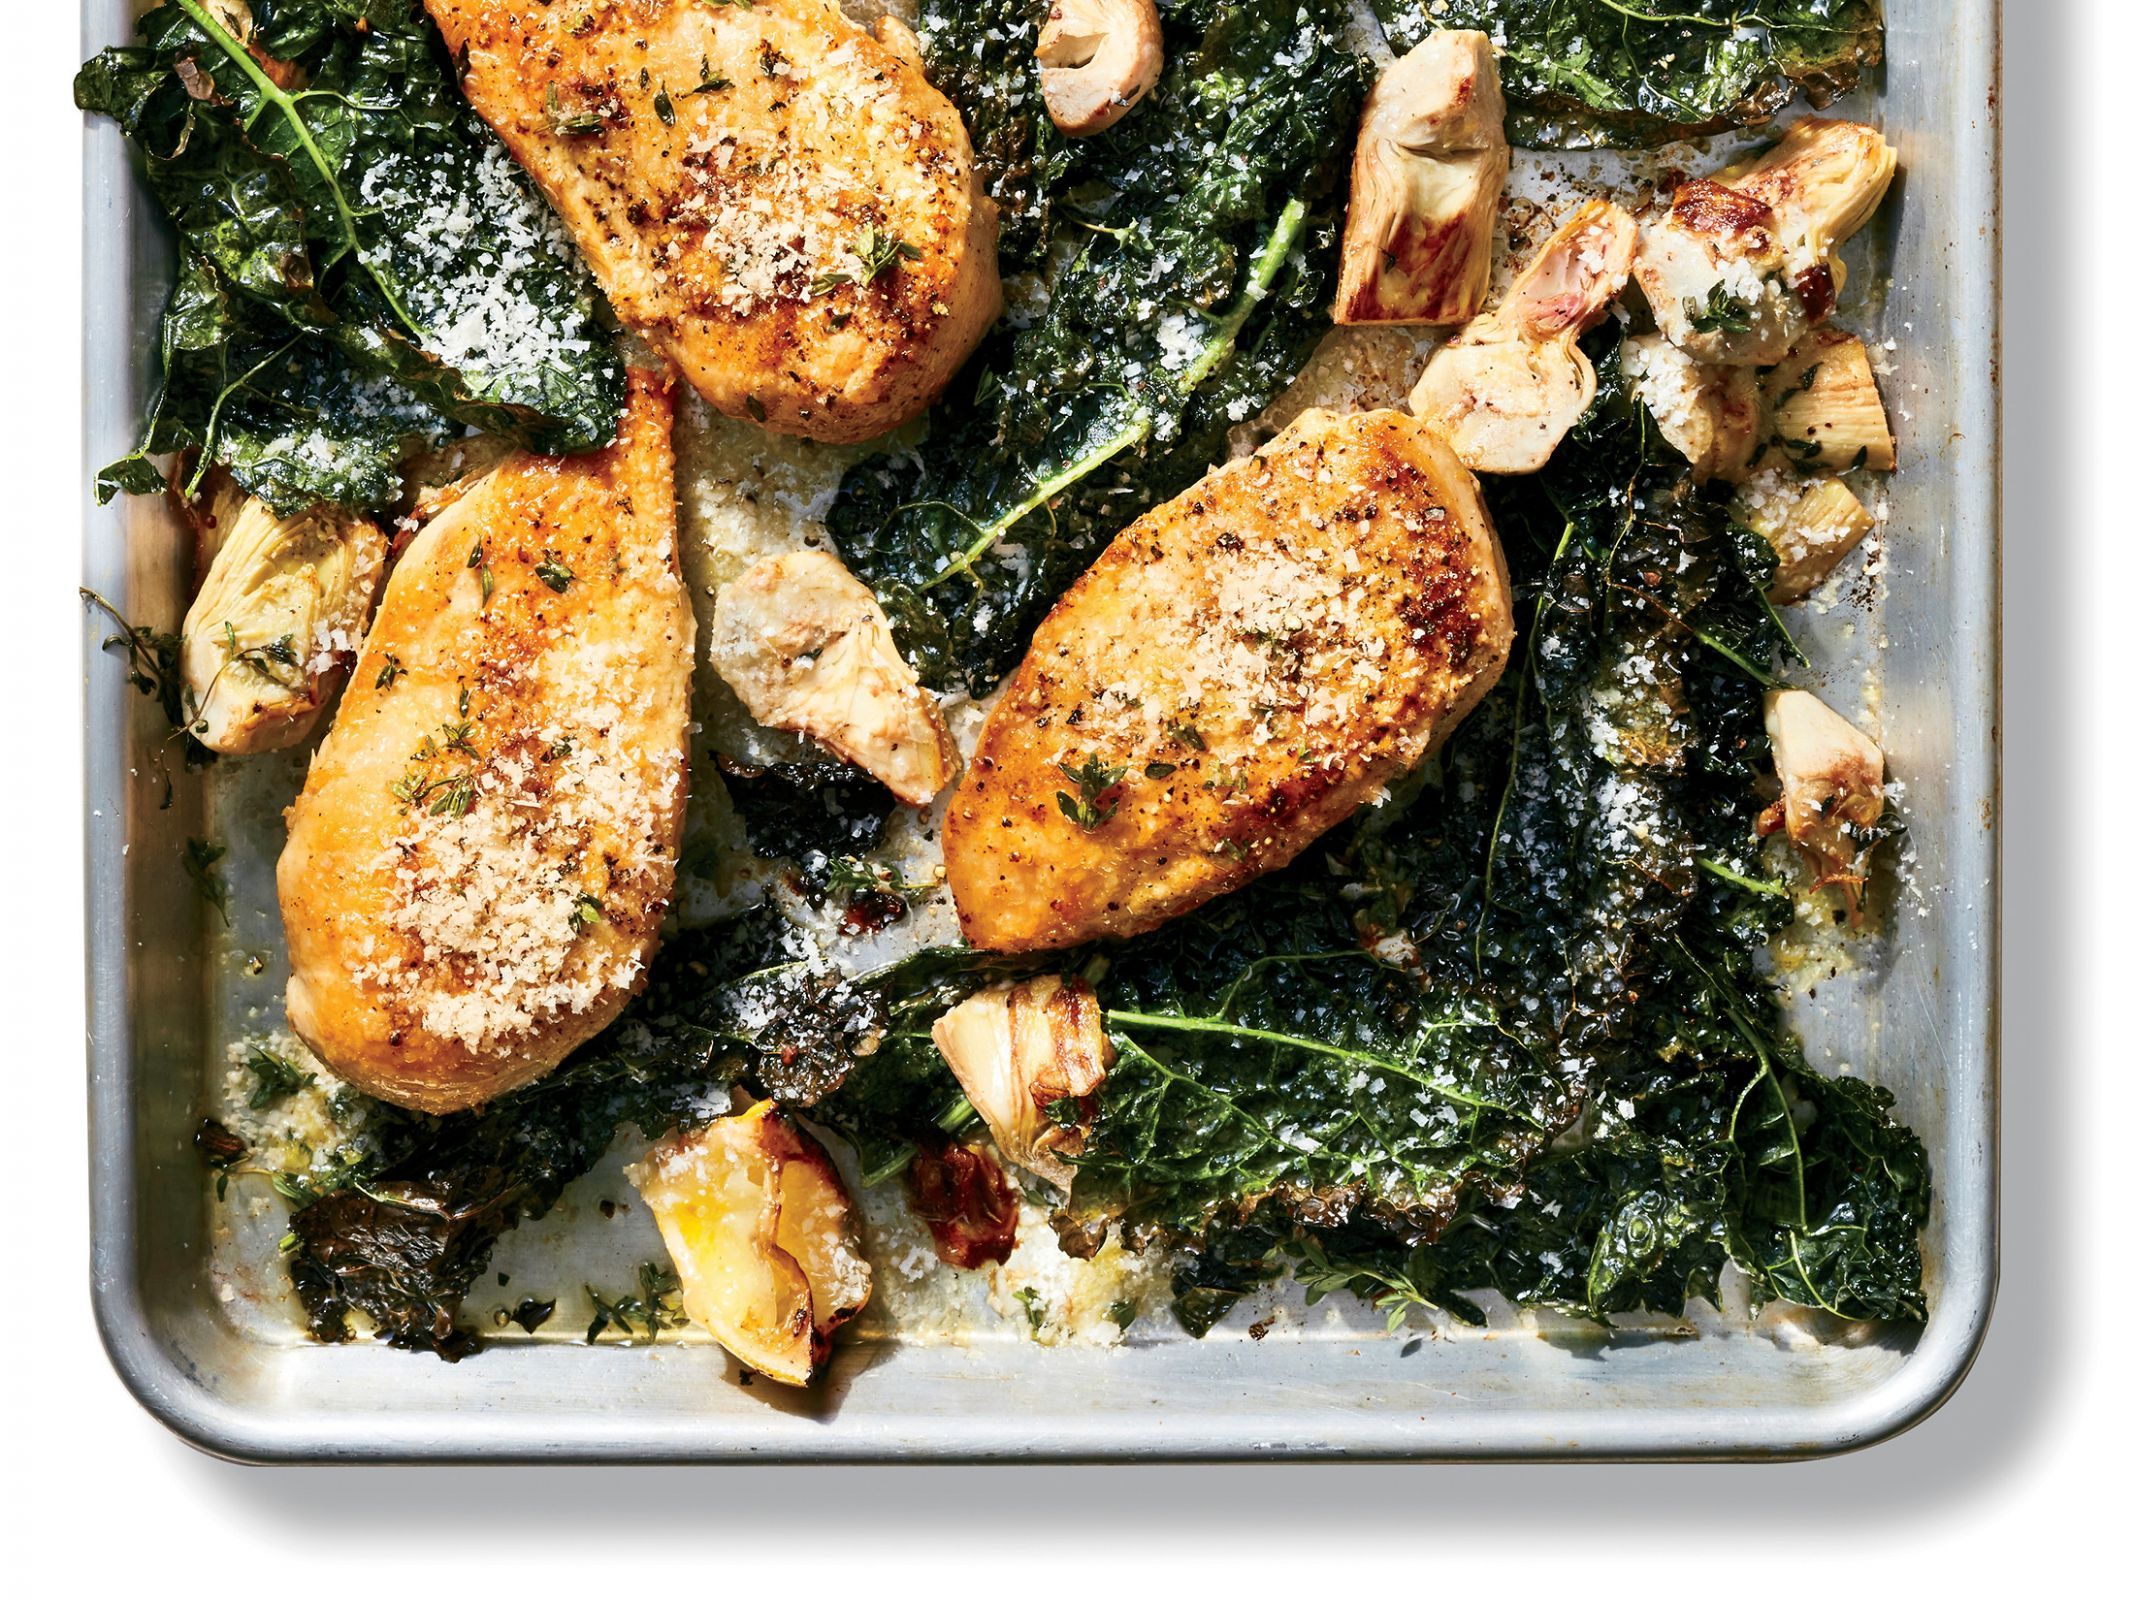 A One-Pan Lemon Chicken With Artichokes and Kale In 9 Minutes ...